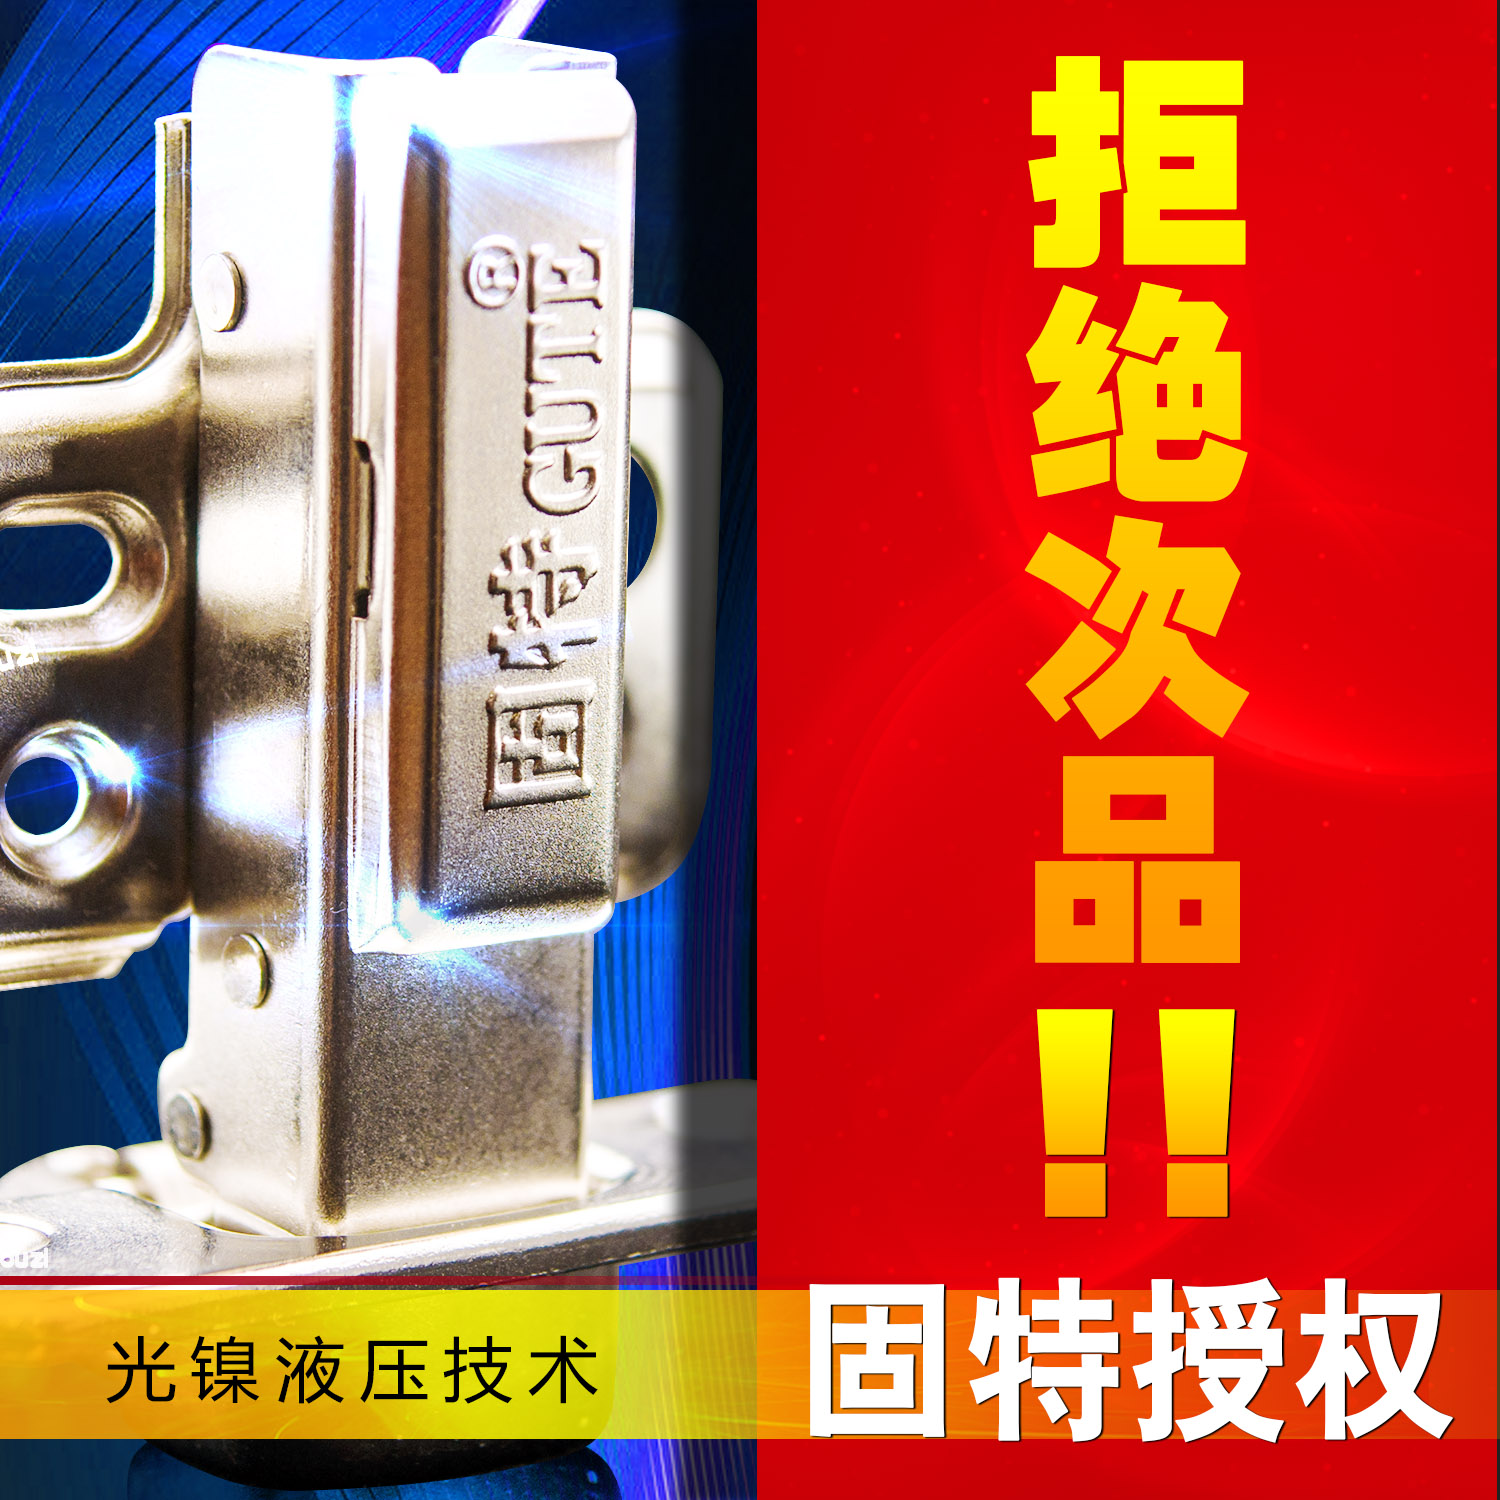 Gute buffer hydraulic damping detachable stainless steel hinge cover half full cover door hinge bend without cover